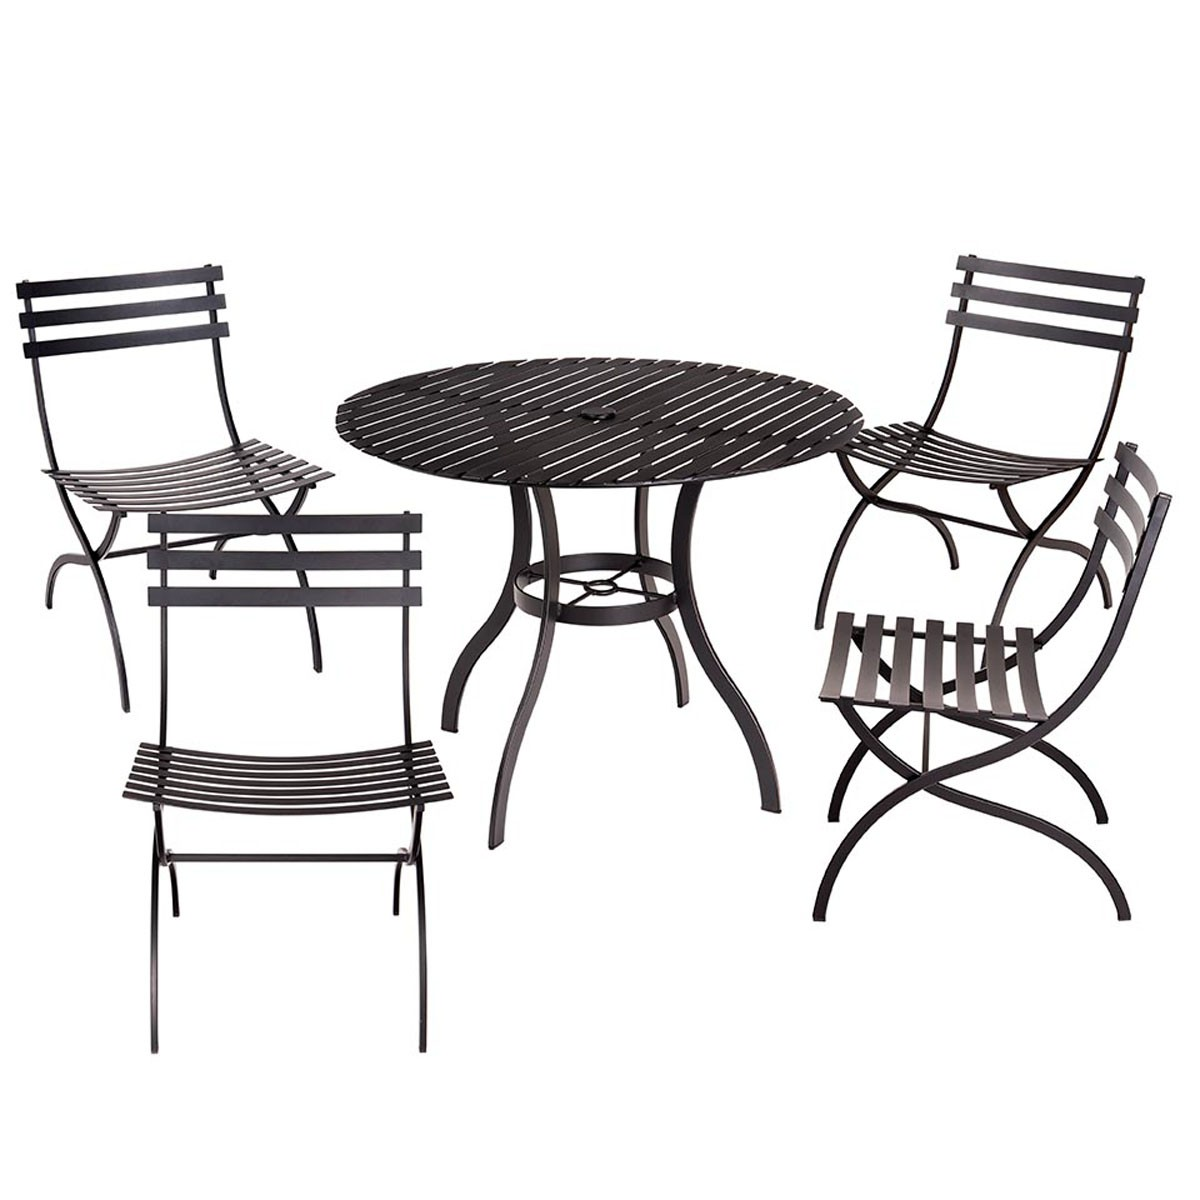 View The Complete Journal Collection No 8041054 5 Piece Outdoor Dining Set